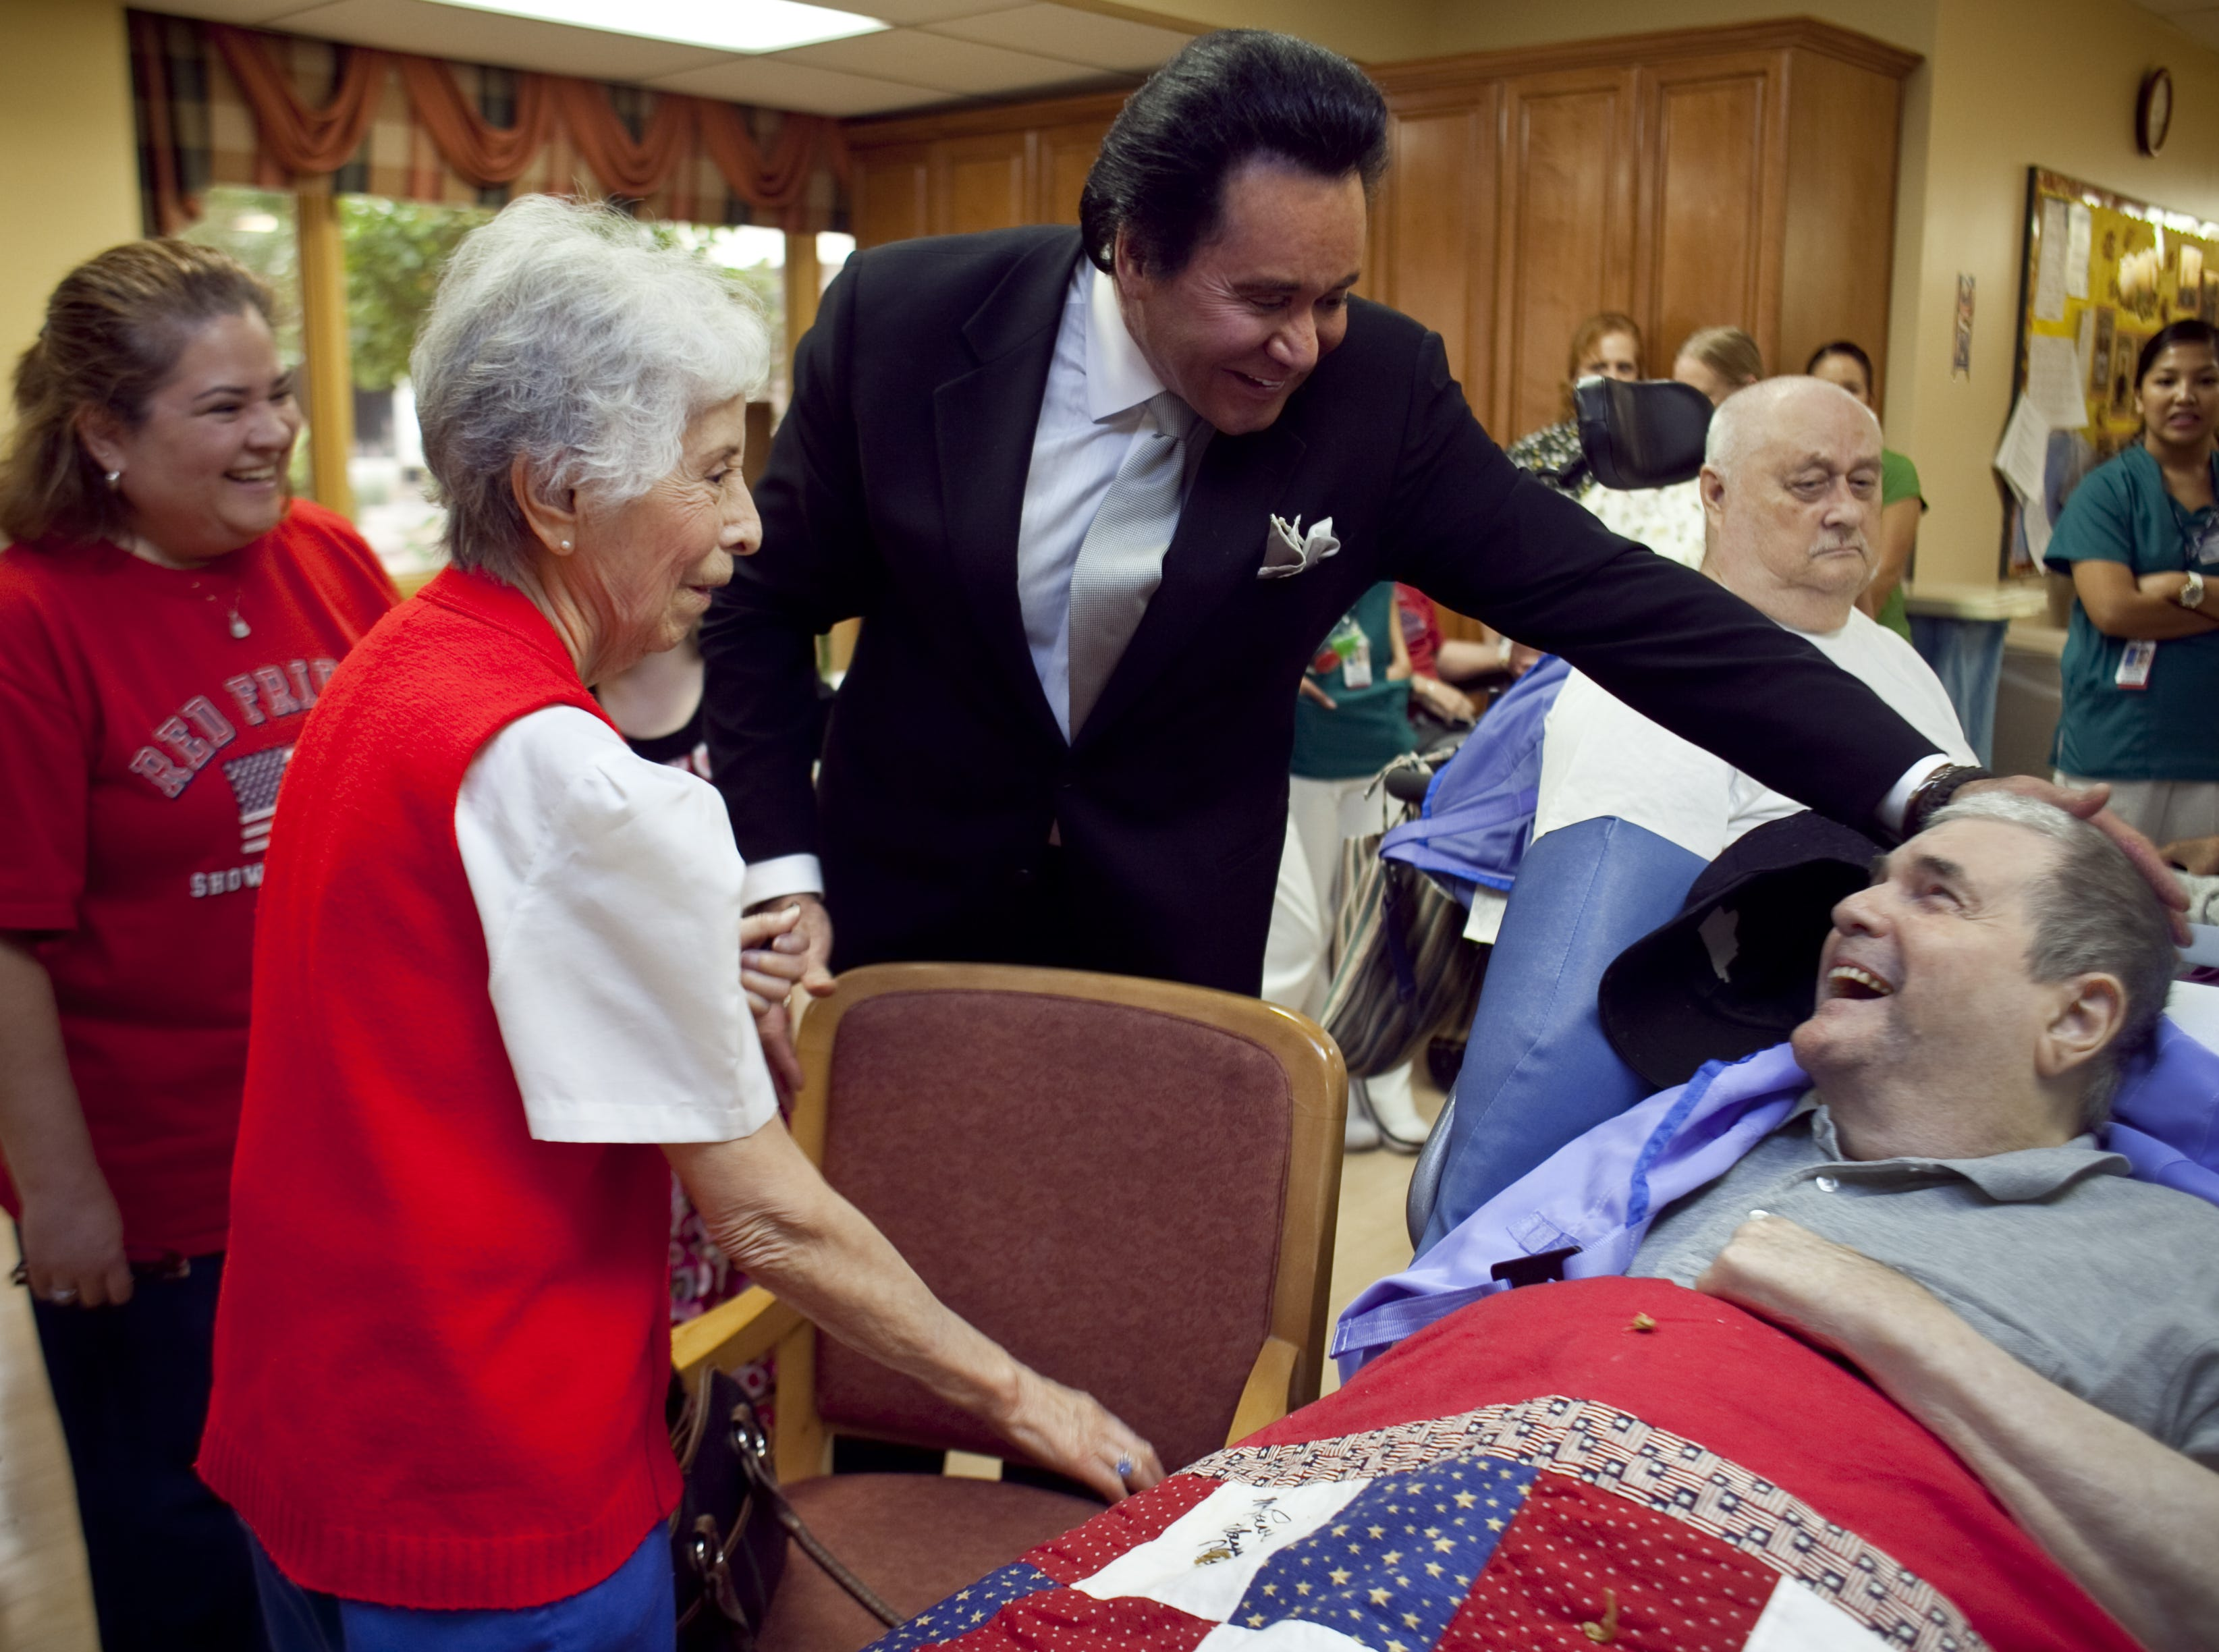 Wayne Newton greets veteran Hurlie Cook during a visit to the VA Community Living Center in 2009.  Looking on is Cook's daughter, Teresa Privette (left) and his wife, Lydia Cook.